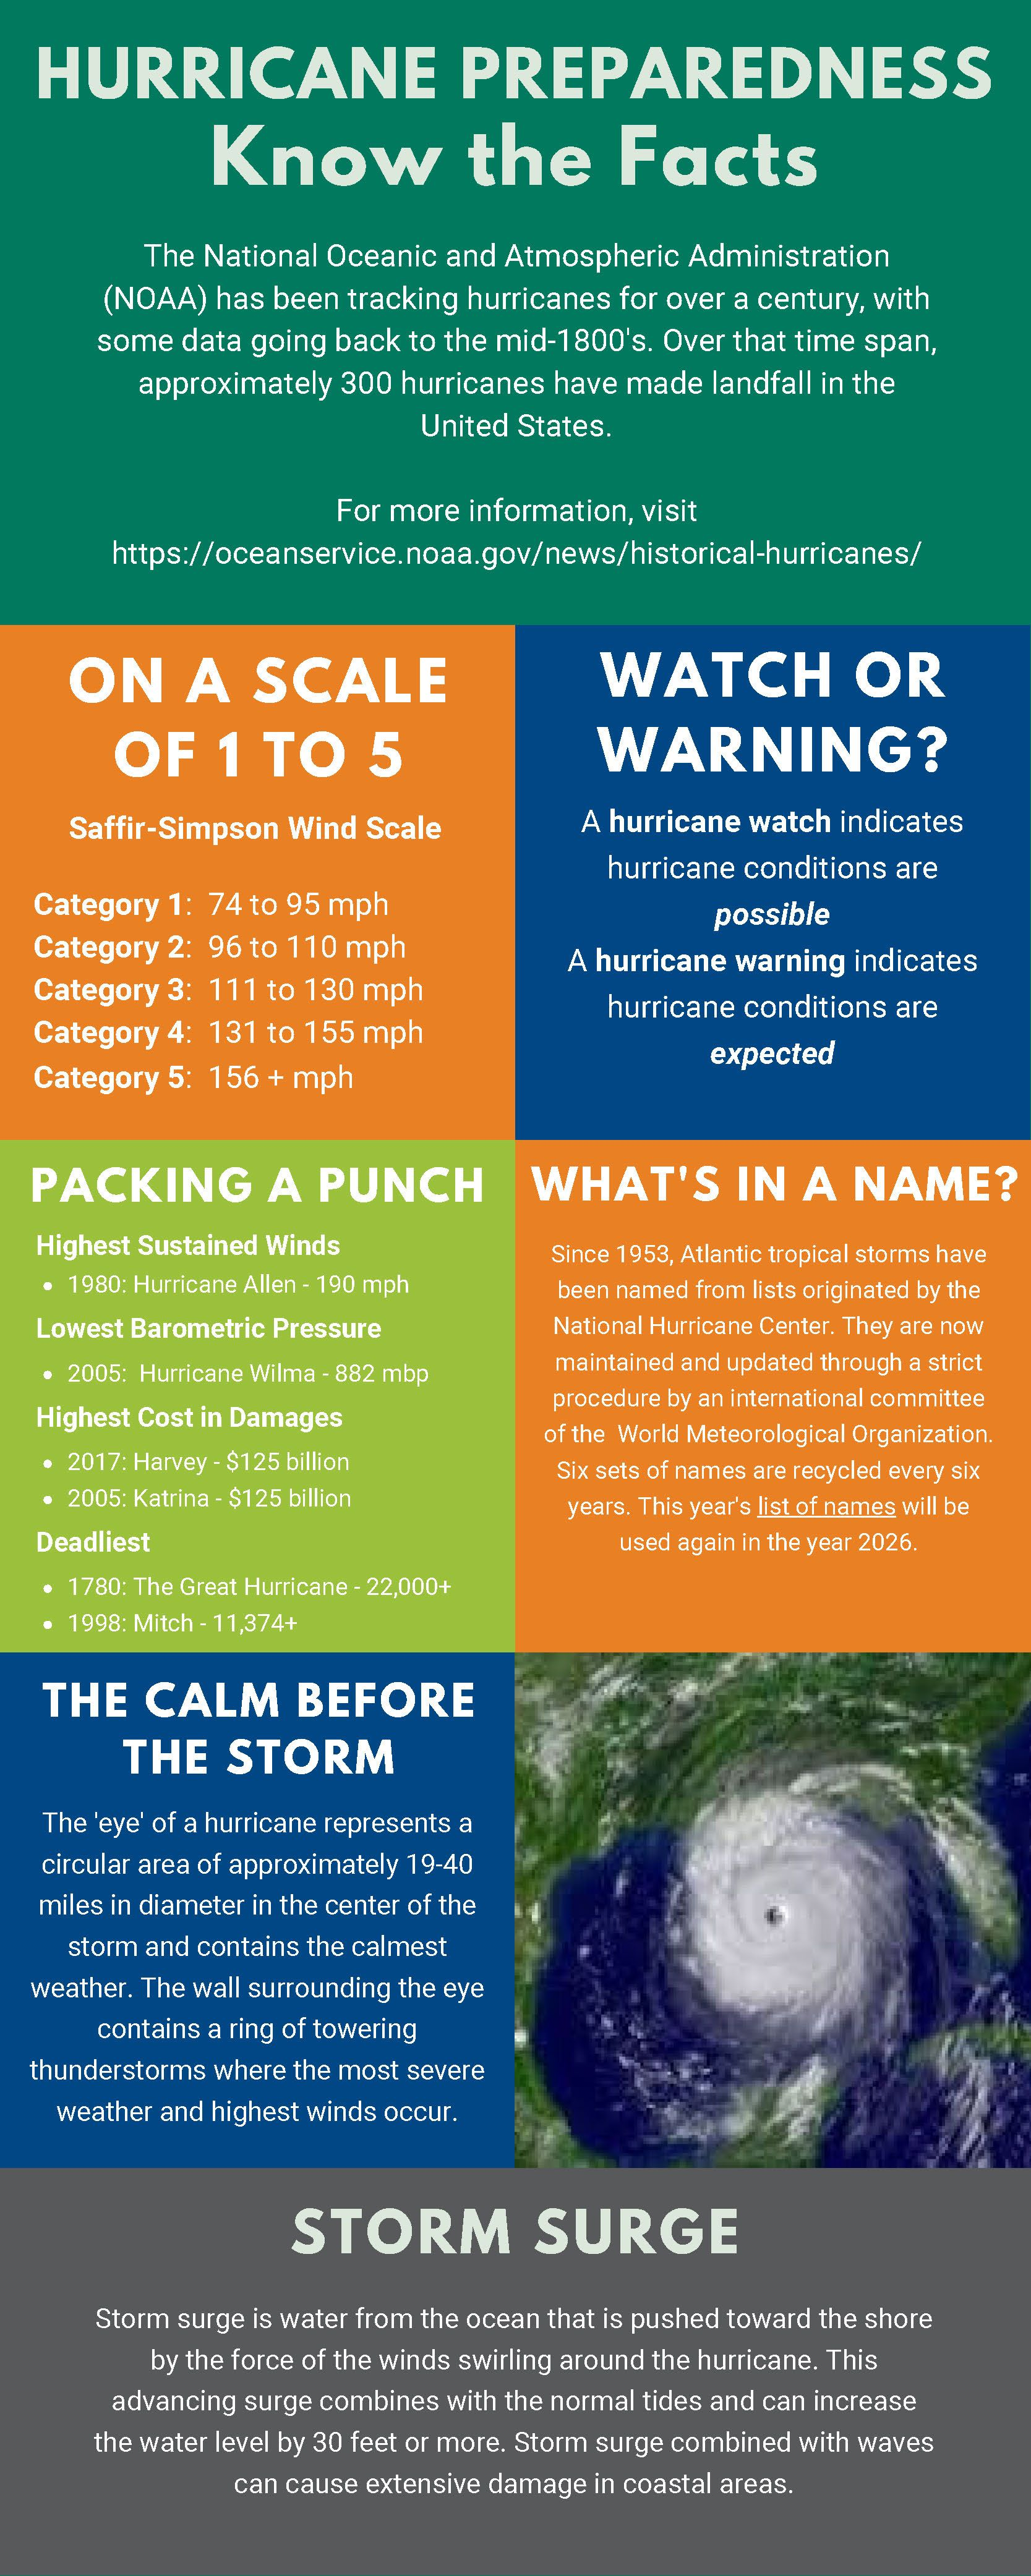 Hurricane Preparedness Know The Facts In 2020 Hurricane Preparedness Preparedness Facts